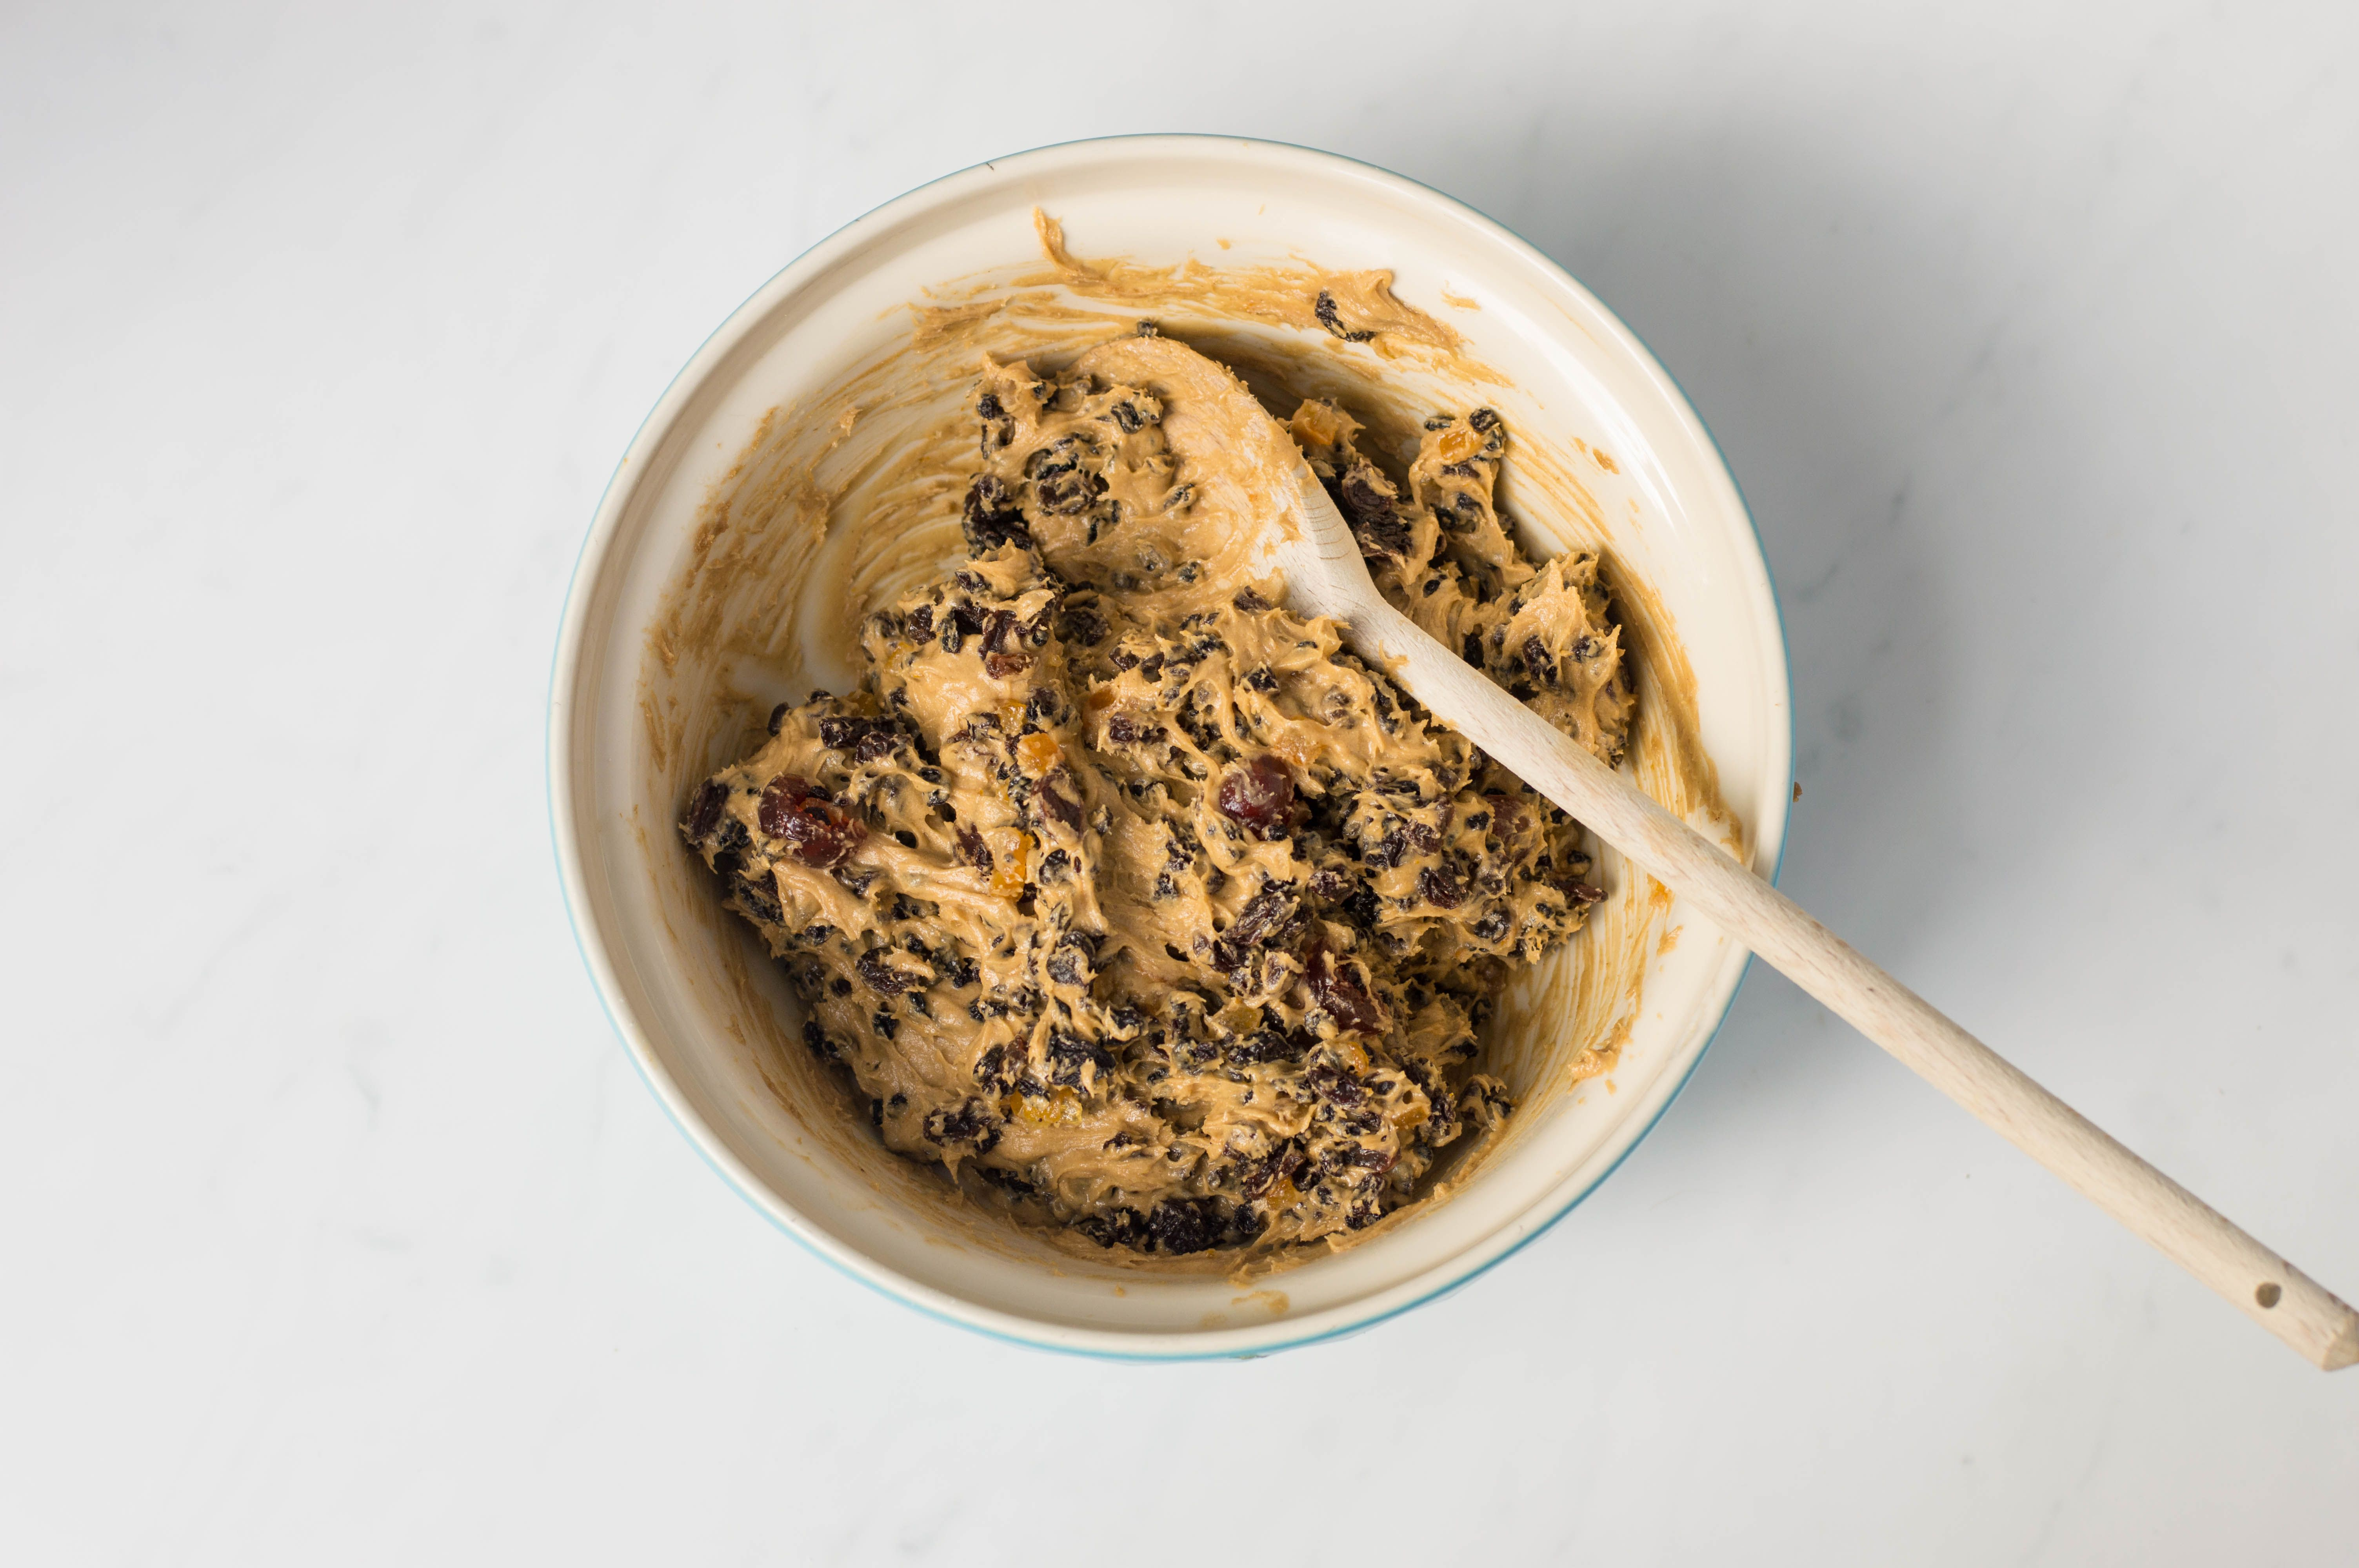 Add the fruits into Scottish dundee cake batter